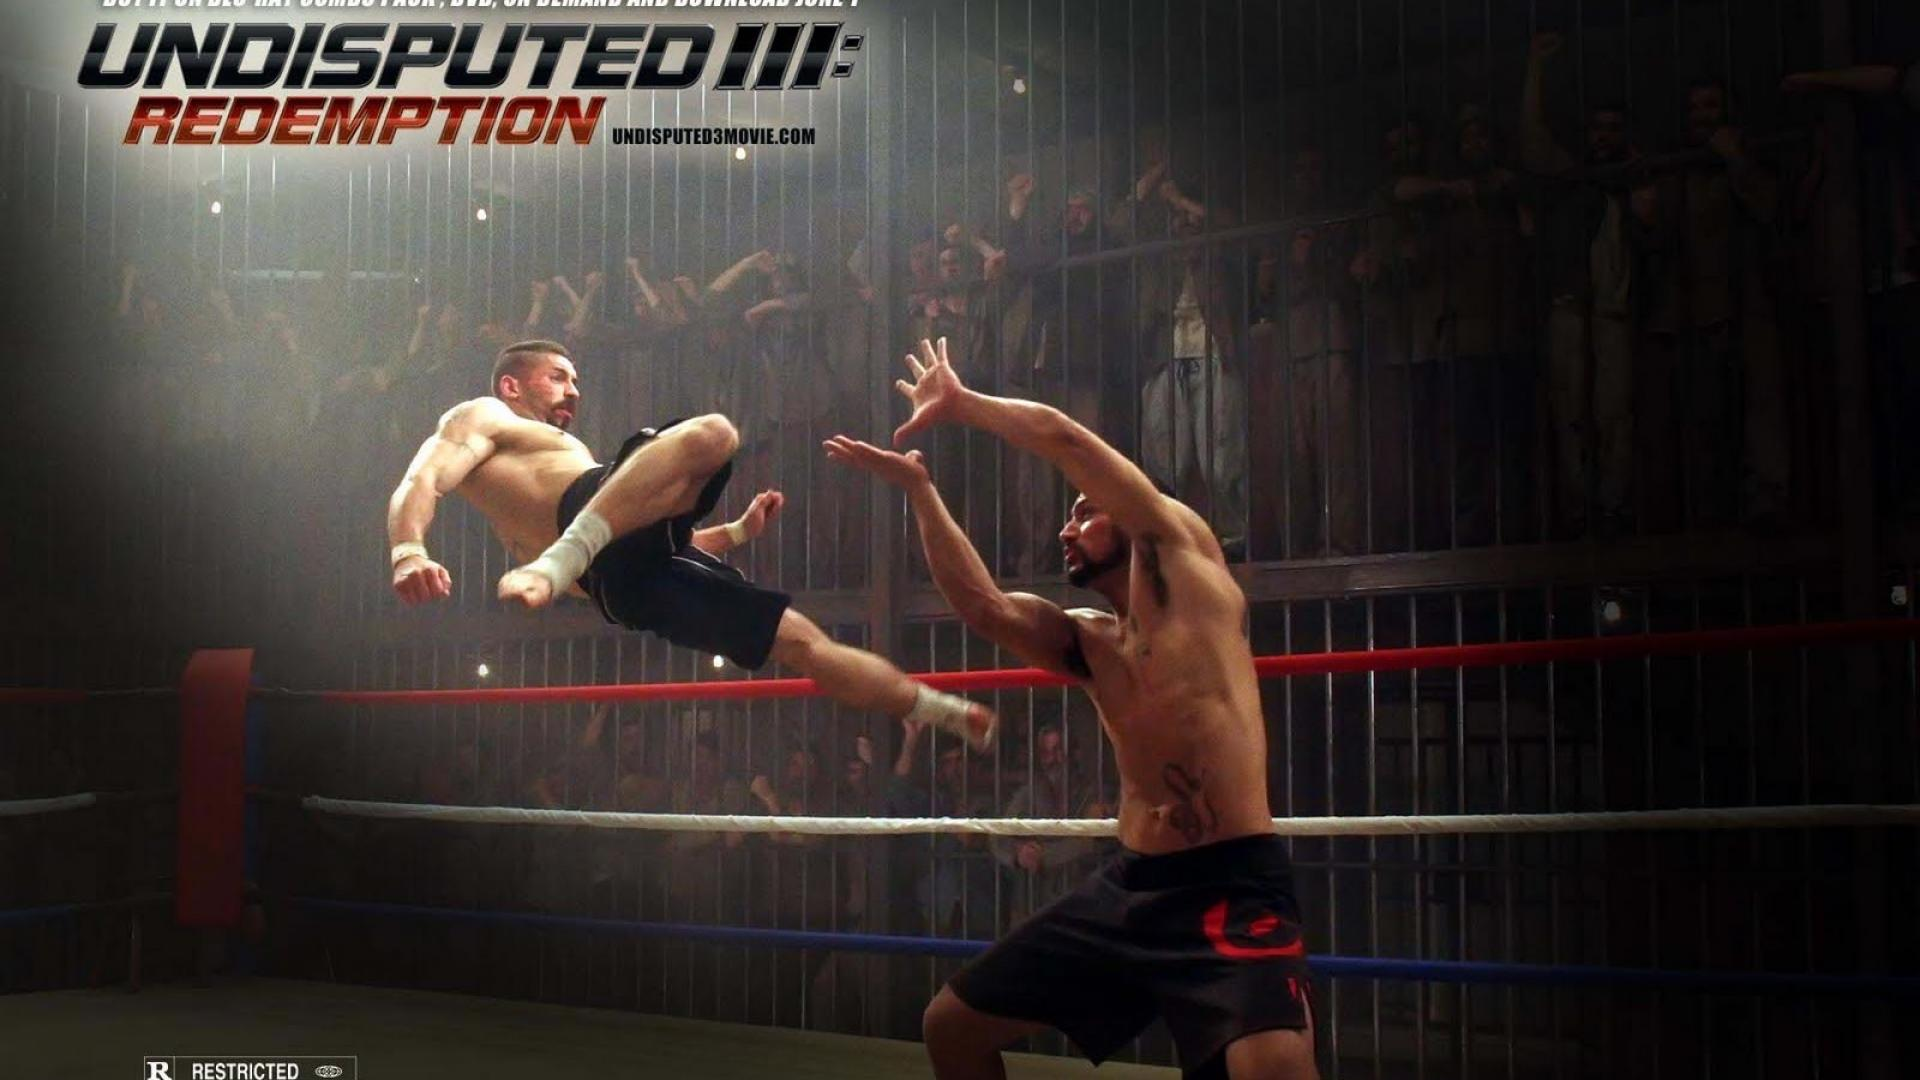 Yuri boyka undisputed scott adkins iii: redemption wallpaper | (4233)